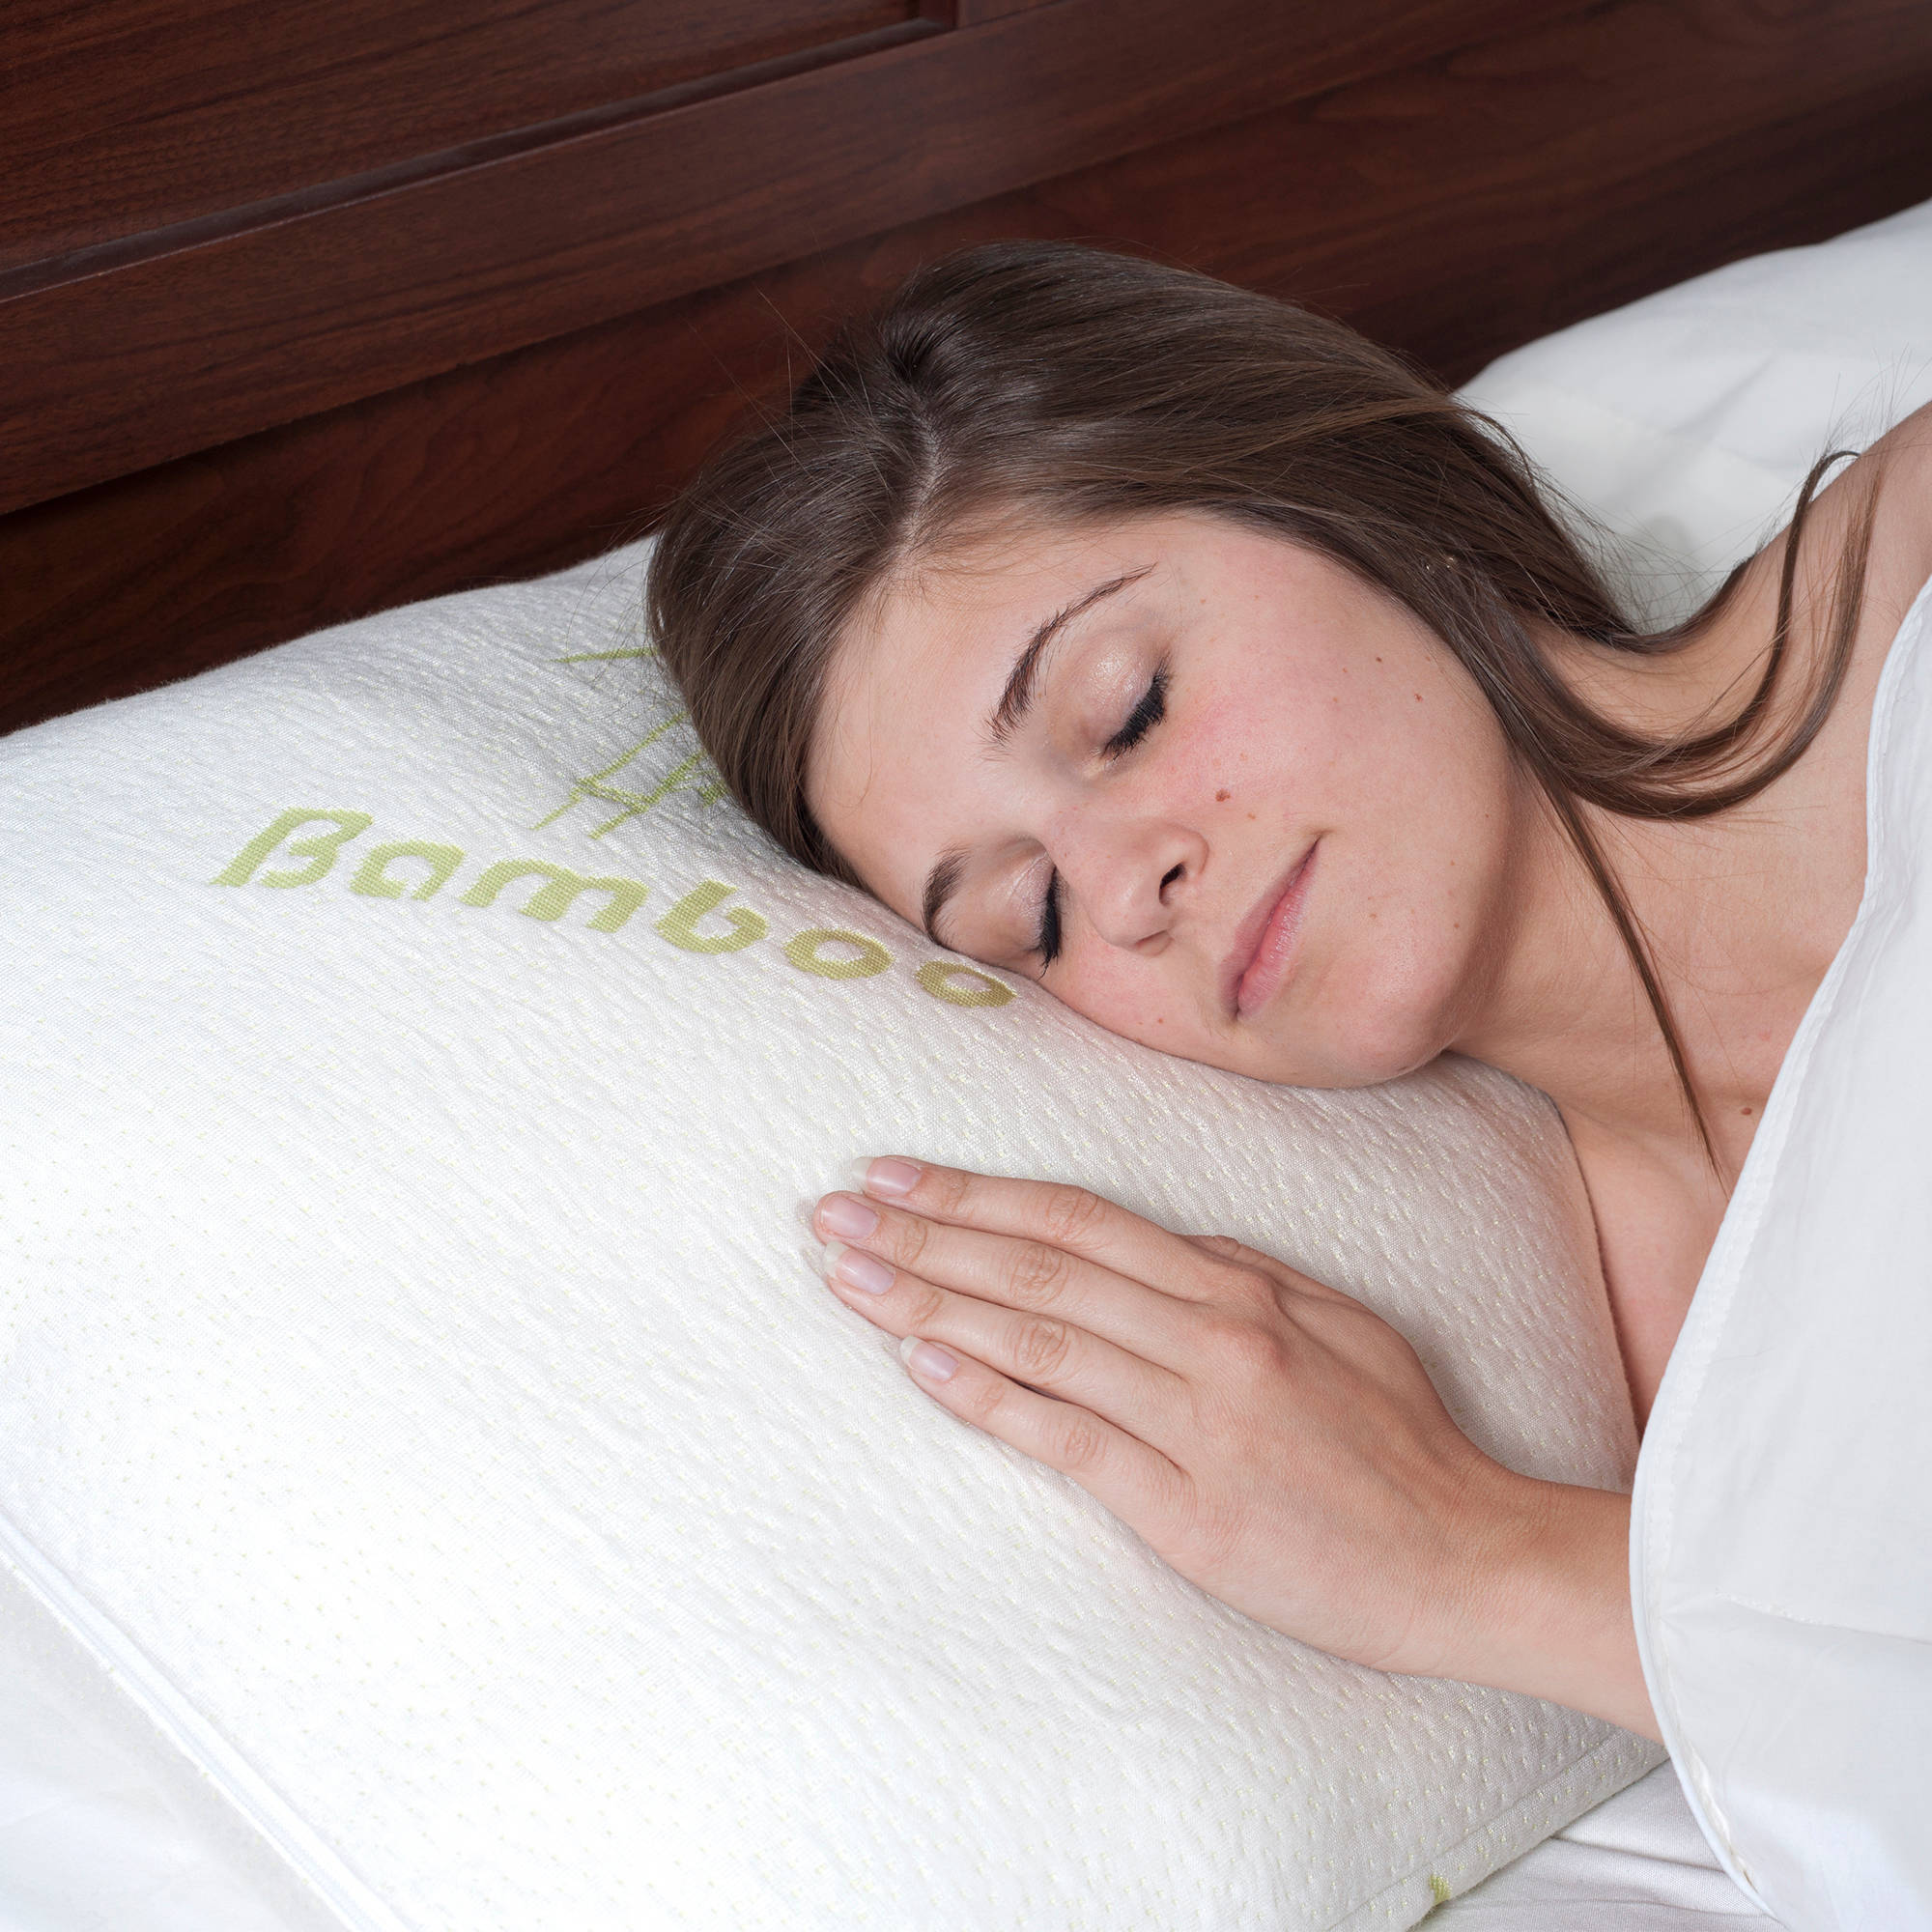 memory foam pillow pillow cover bamboo from rayon bed pillows for comfort and support by lavish home walmartcom